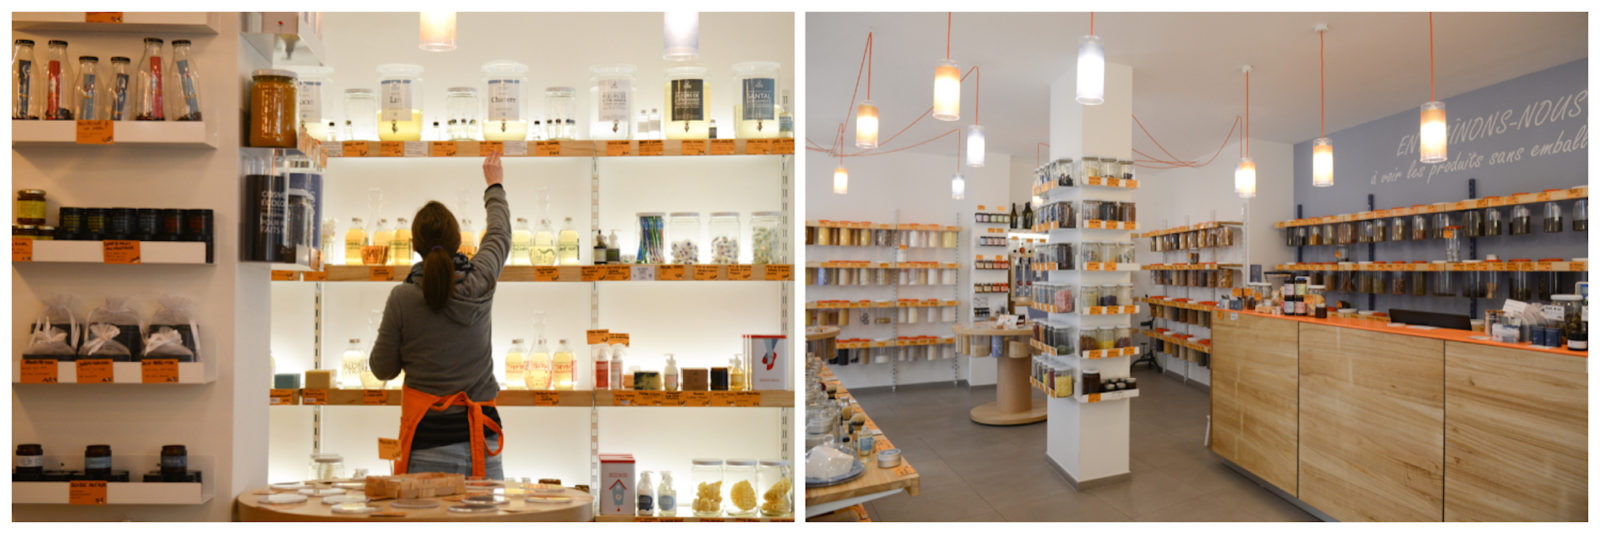 Negozio Leggero is one of the best zero-waste shops in Paris, where everything comes in reusable containers neatly packed on wooden shelves.